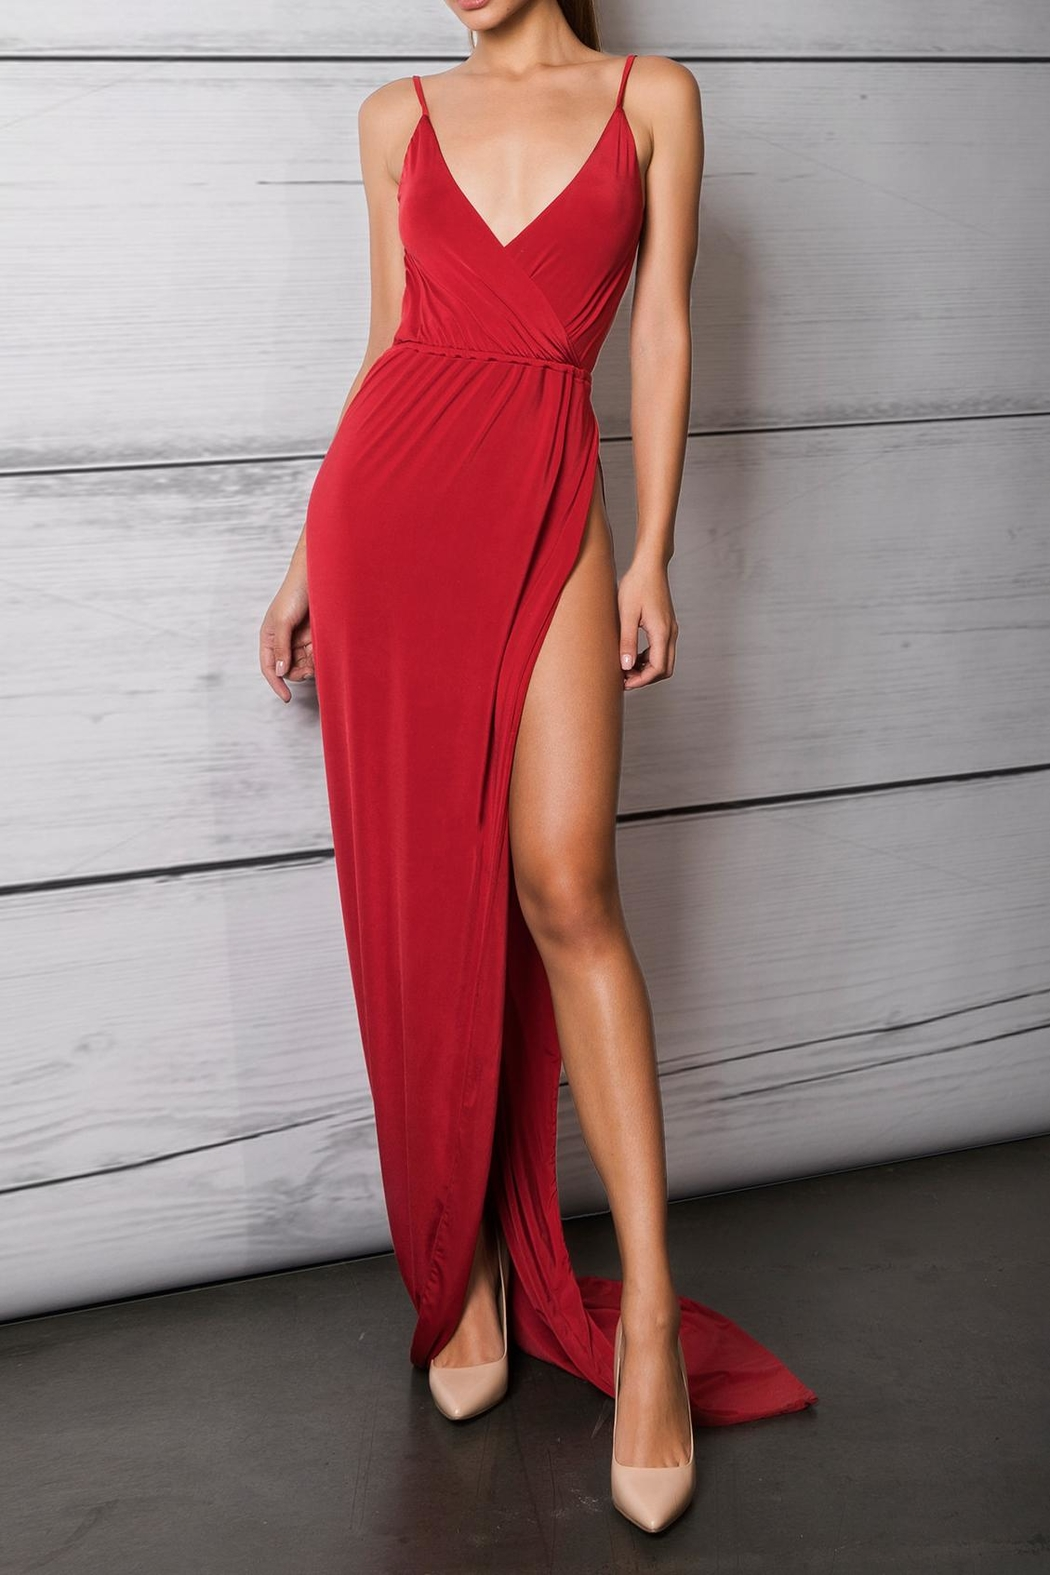 Savee Couture Savee High Slit Dress from Toronto by NakedBodyz ...